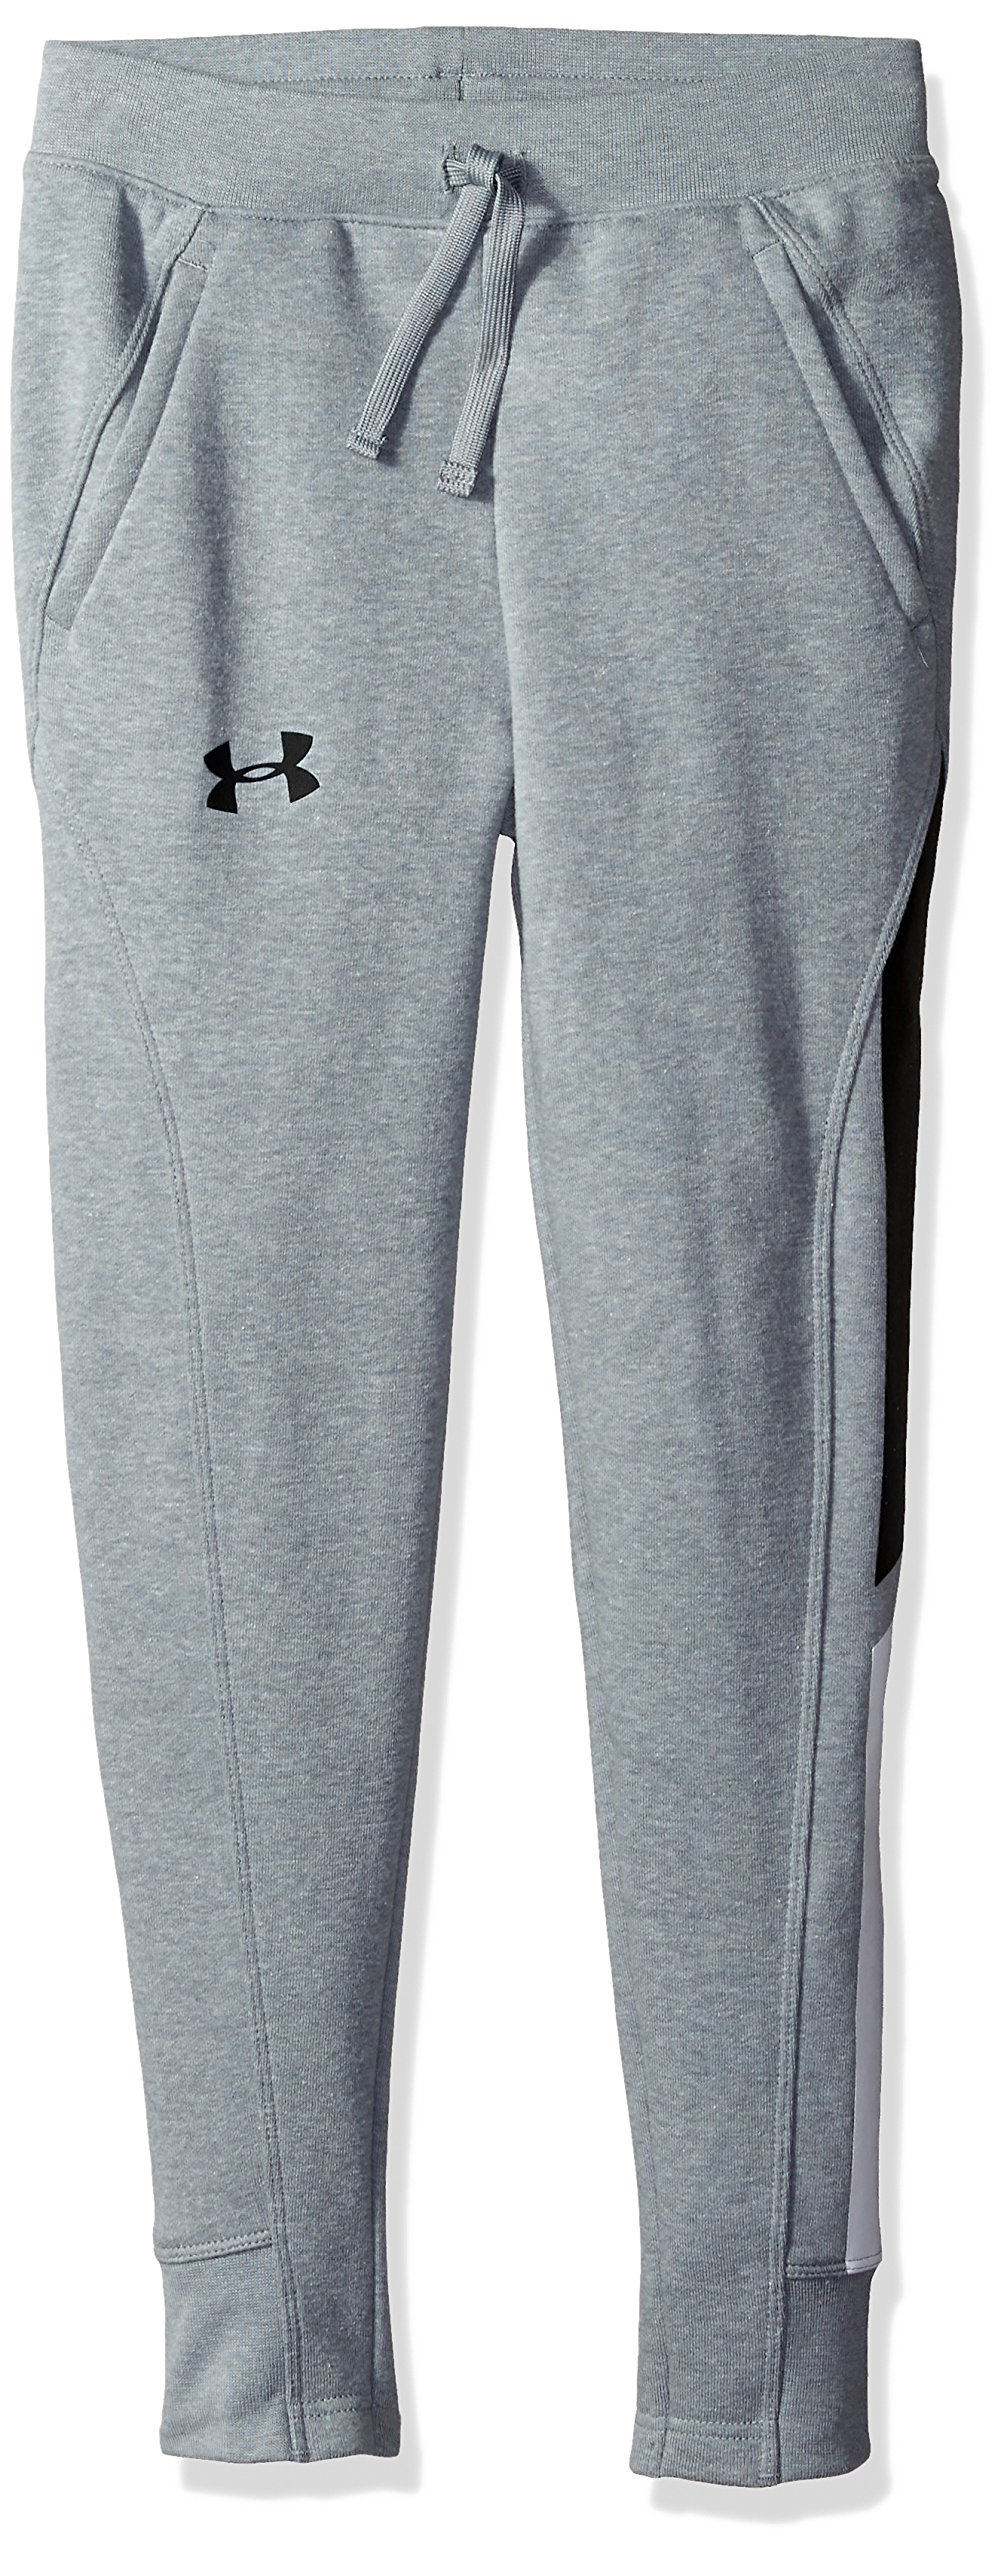 Under Armour Boys Rival Jogger, Steel Light Heather (036)/Black, Youth Small by Under Armour